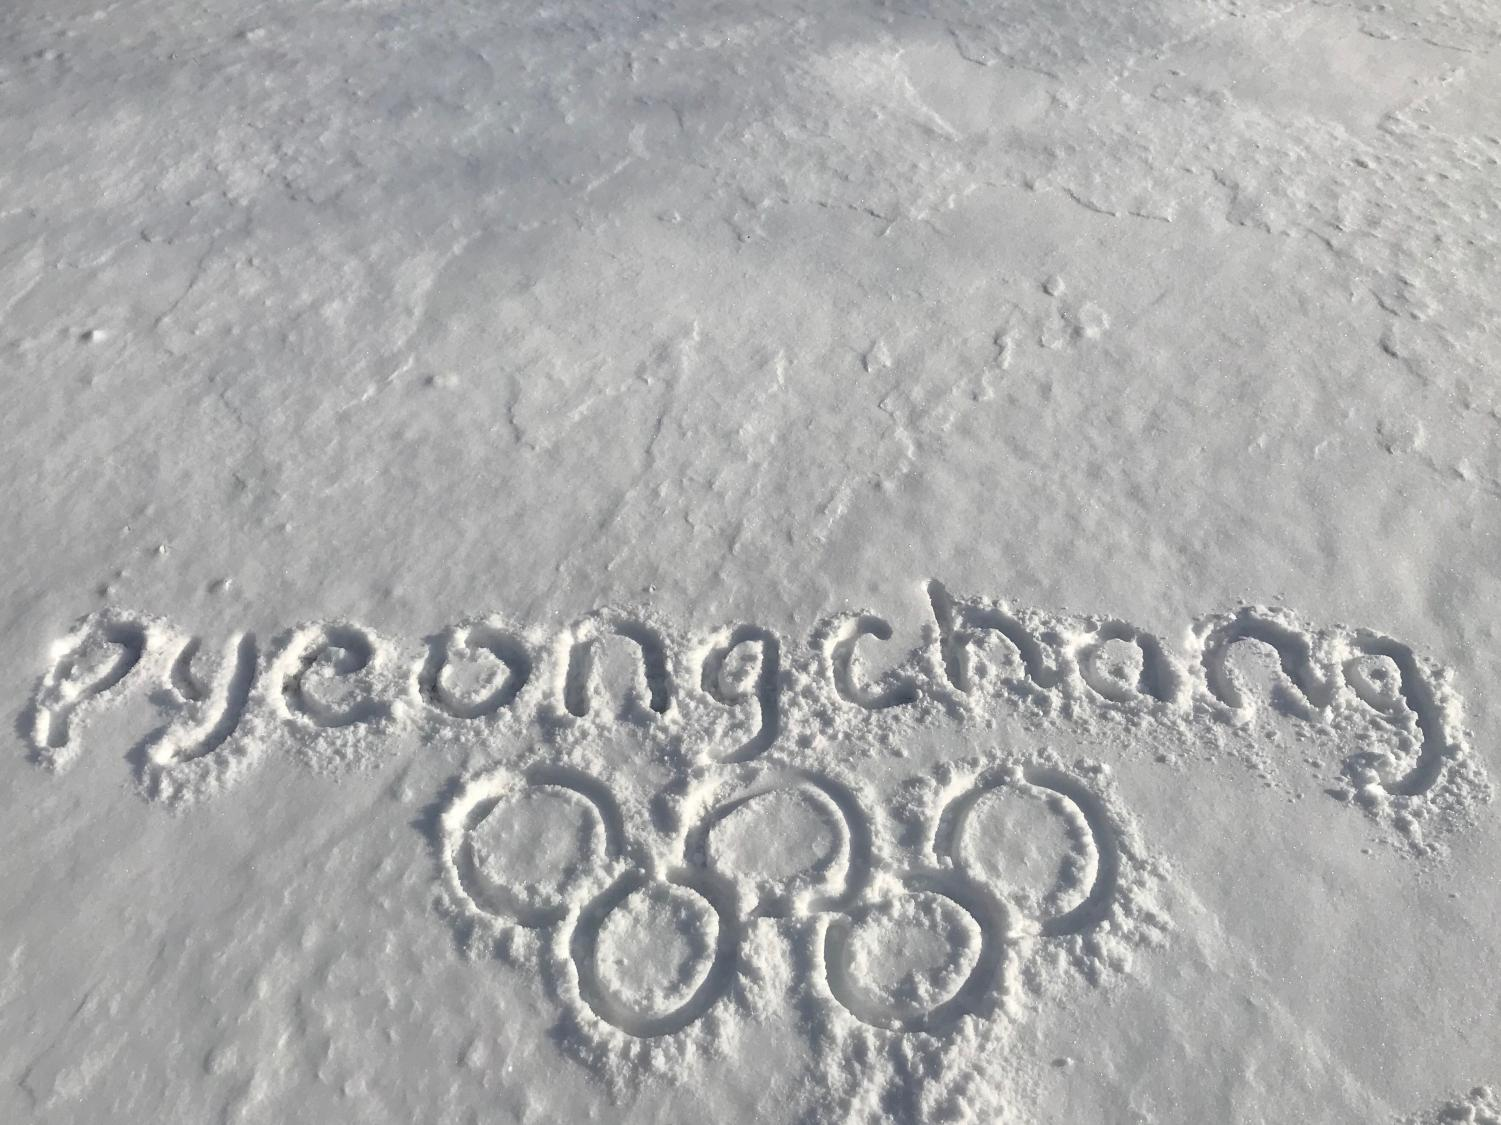 The 2018 Winter Olympic Games will take place in Pyeongchang, South Korea.